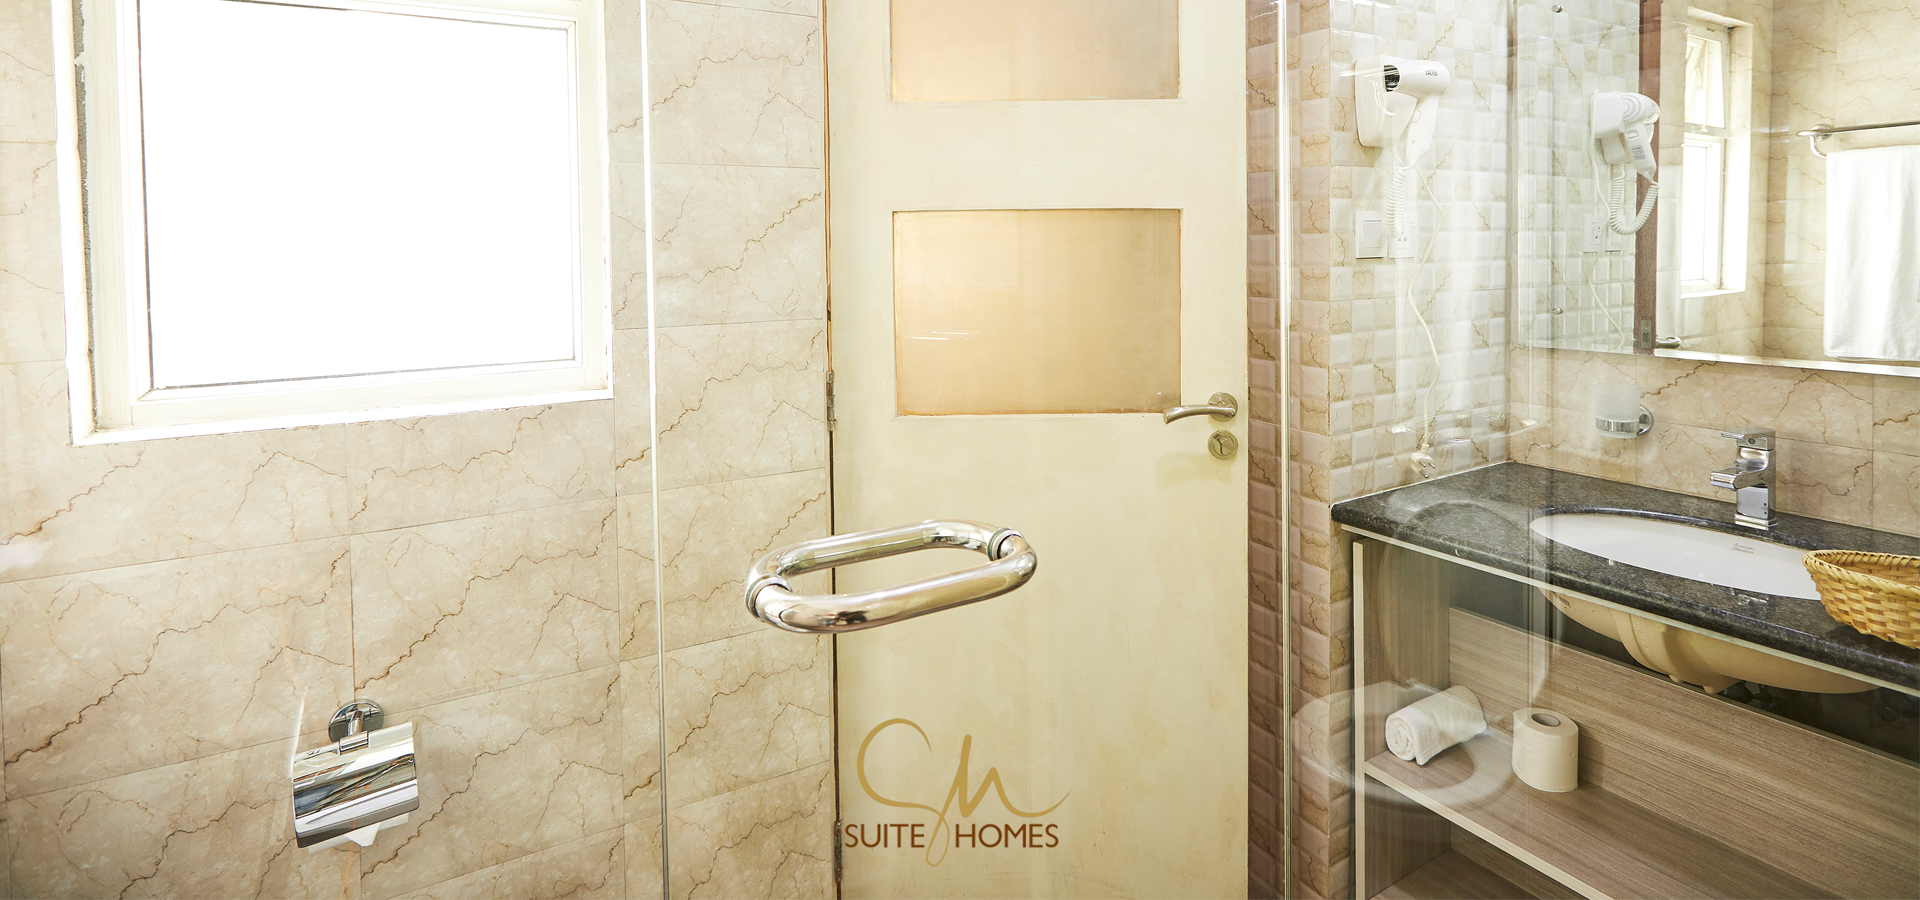 suitehomes-web-bath